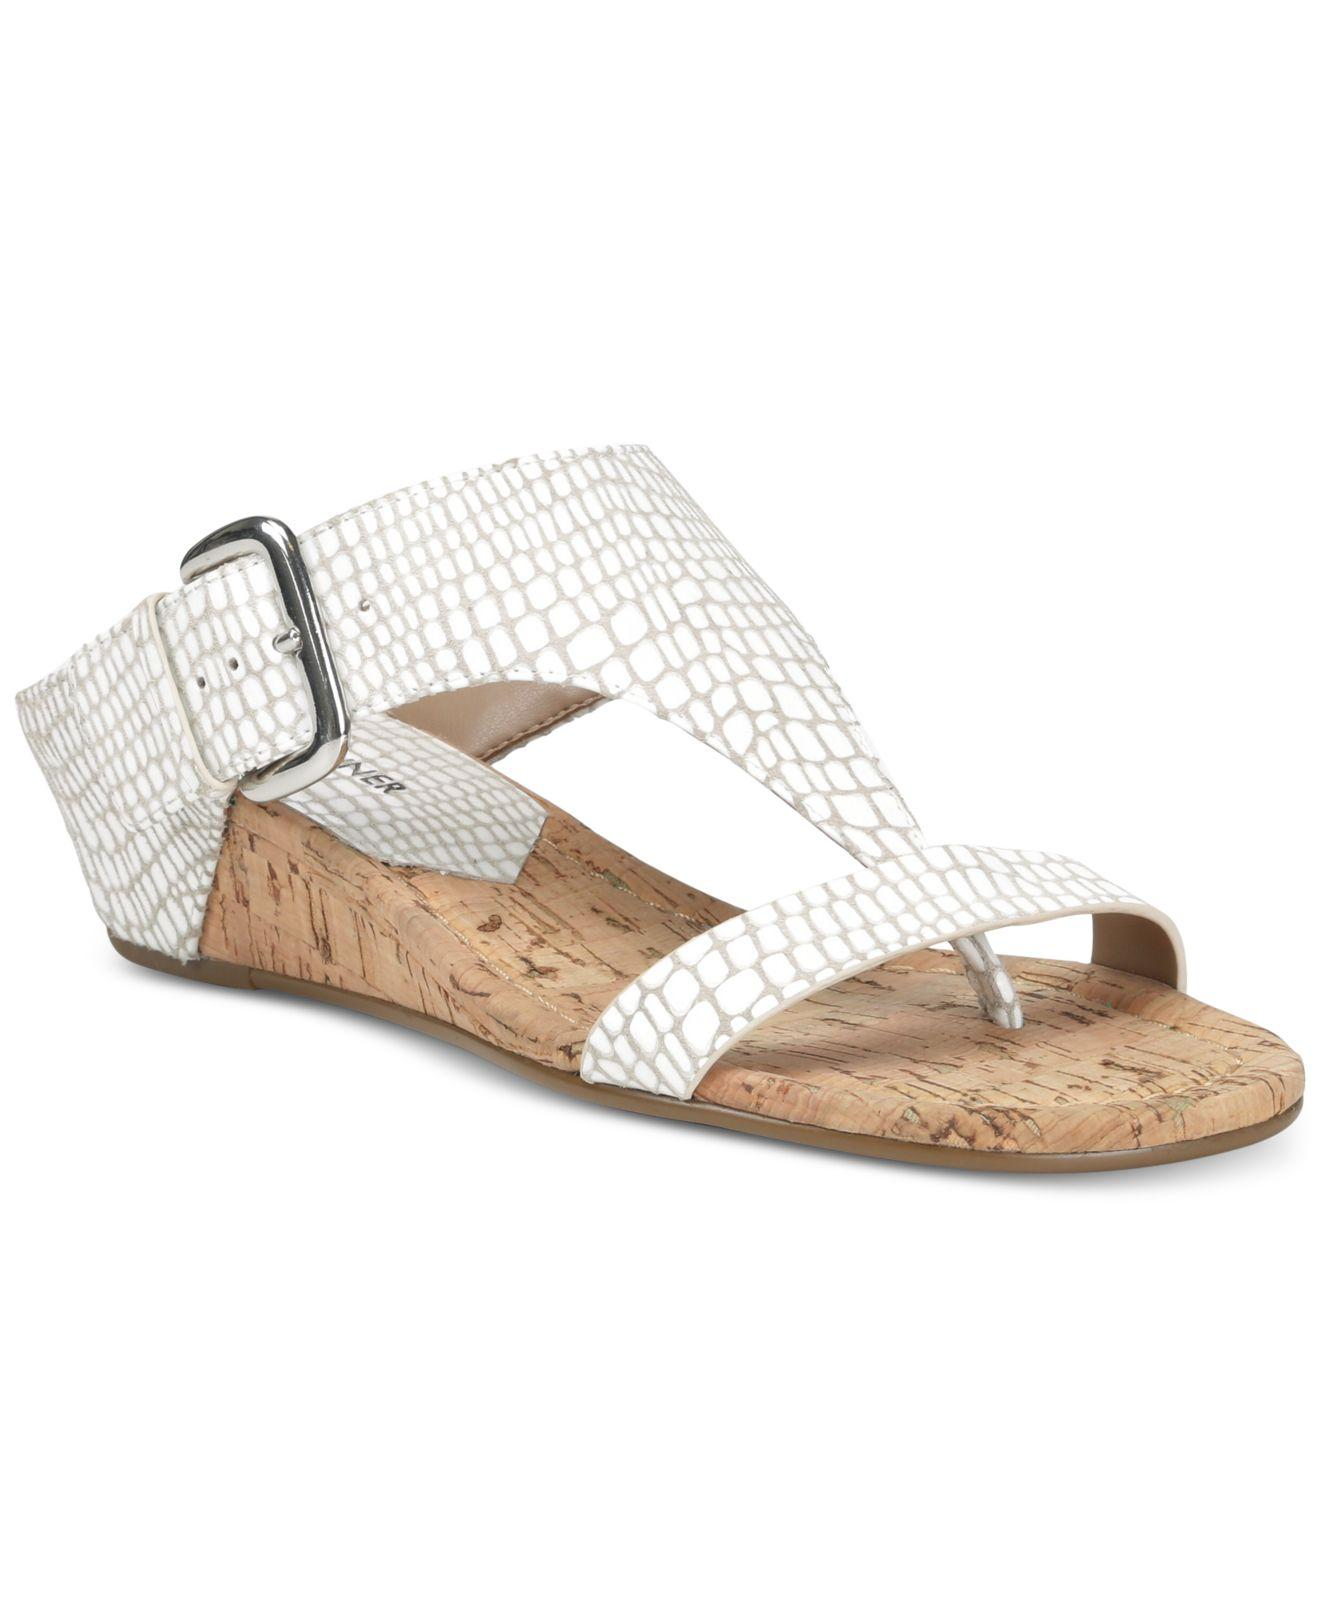 a87f26f780c Lyst - Donald J Pliner Doli Wedge Sandals in White